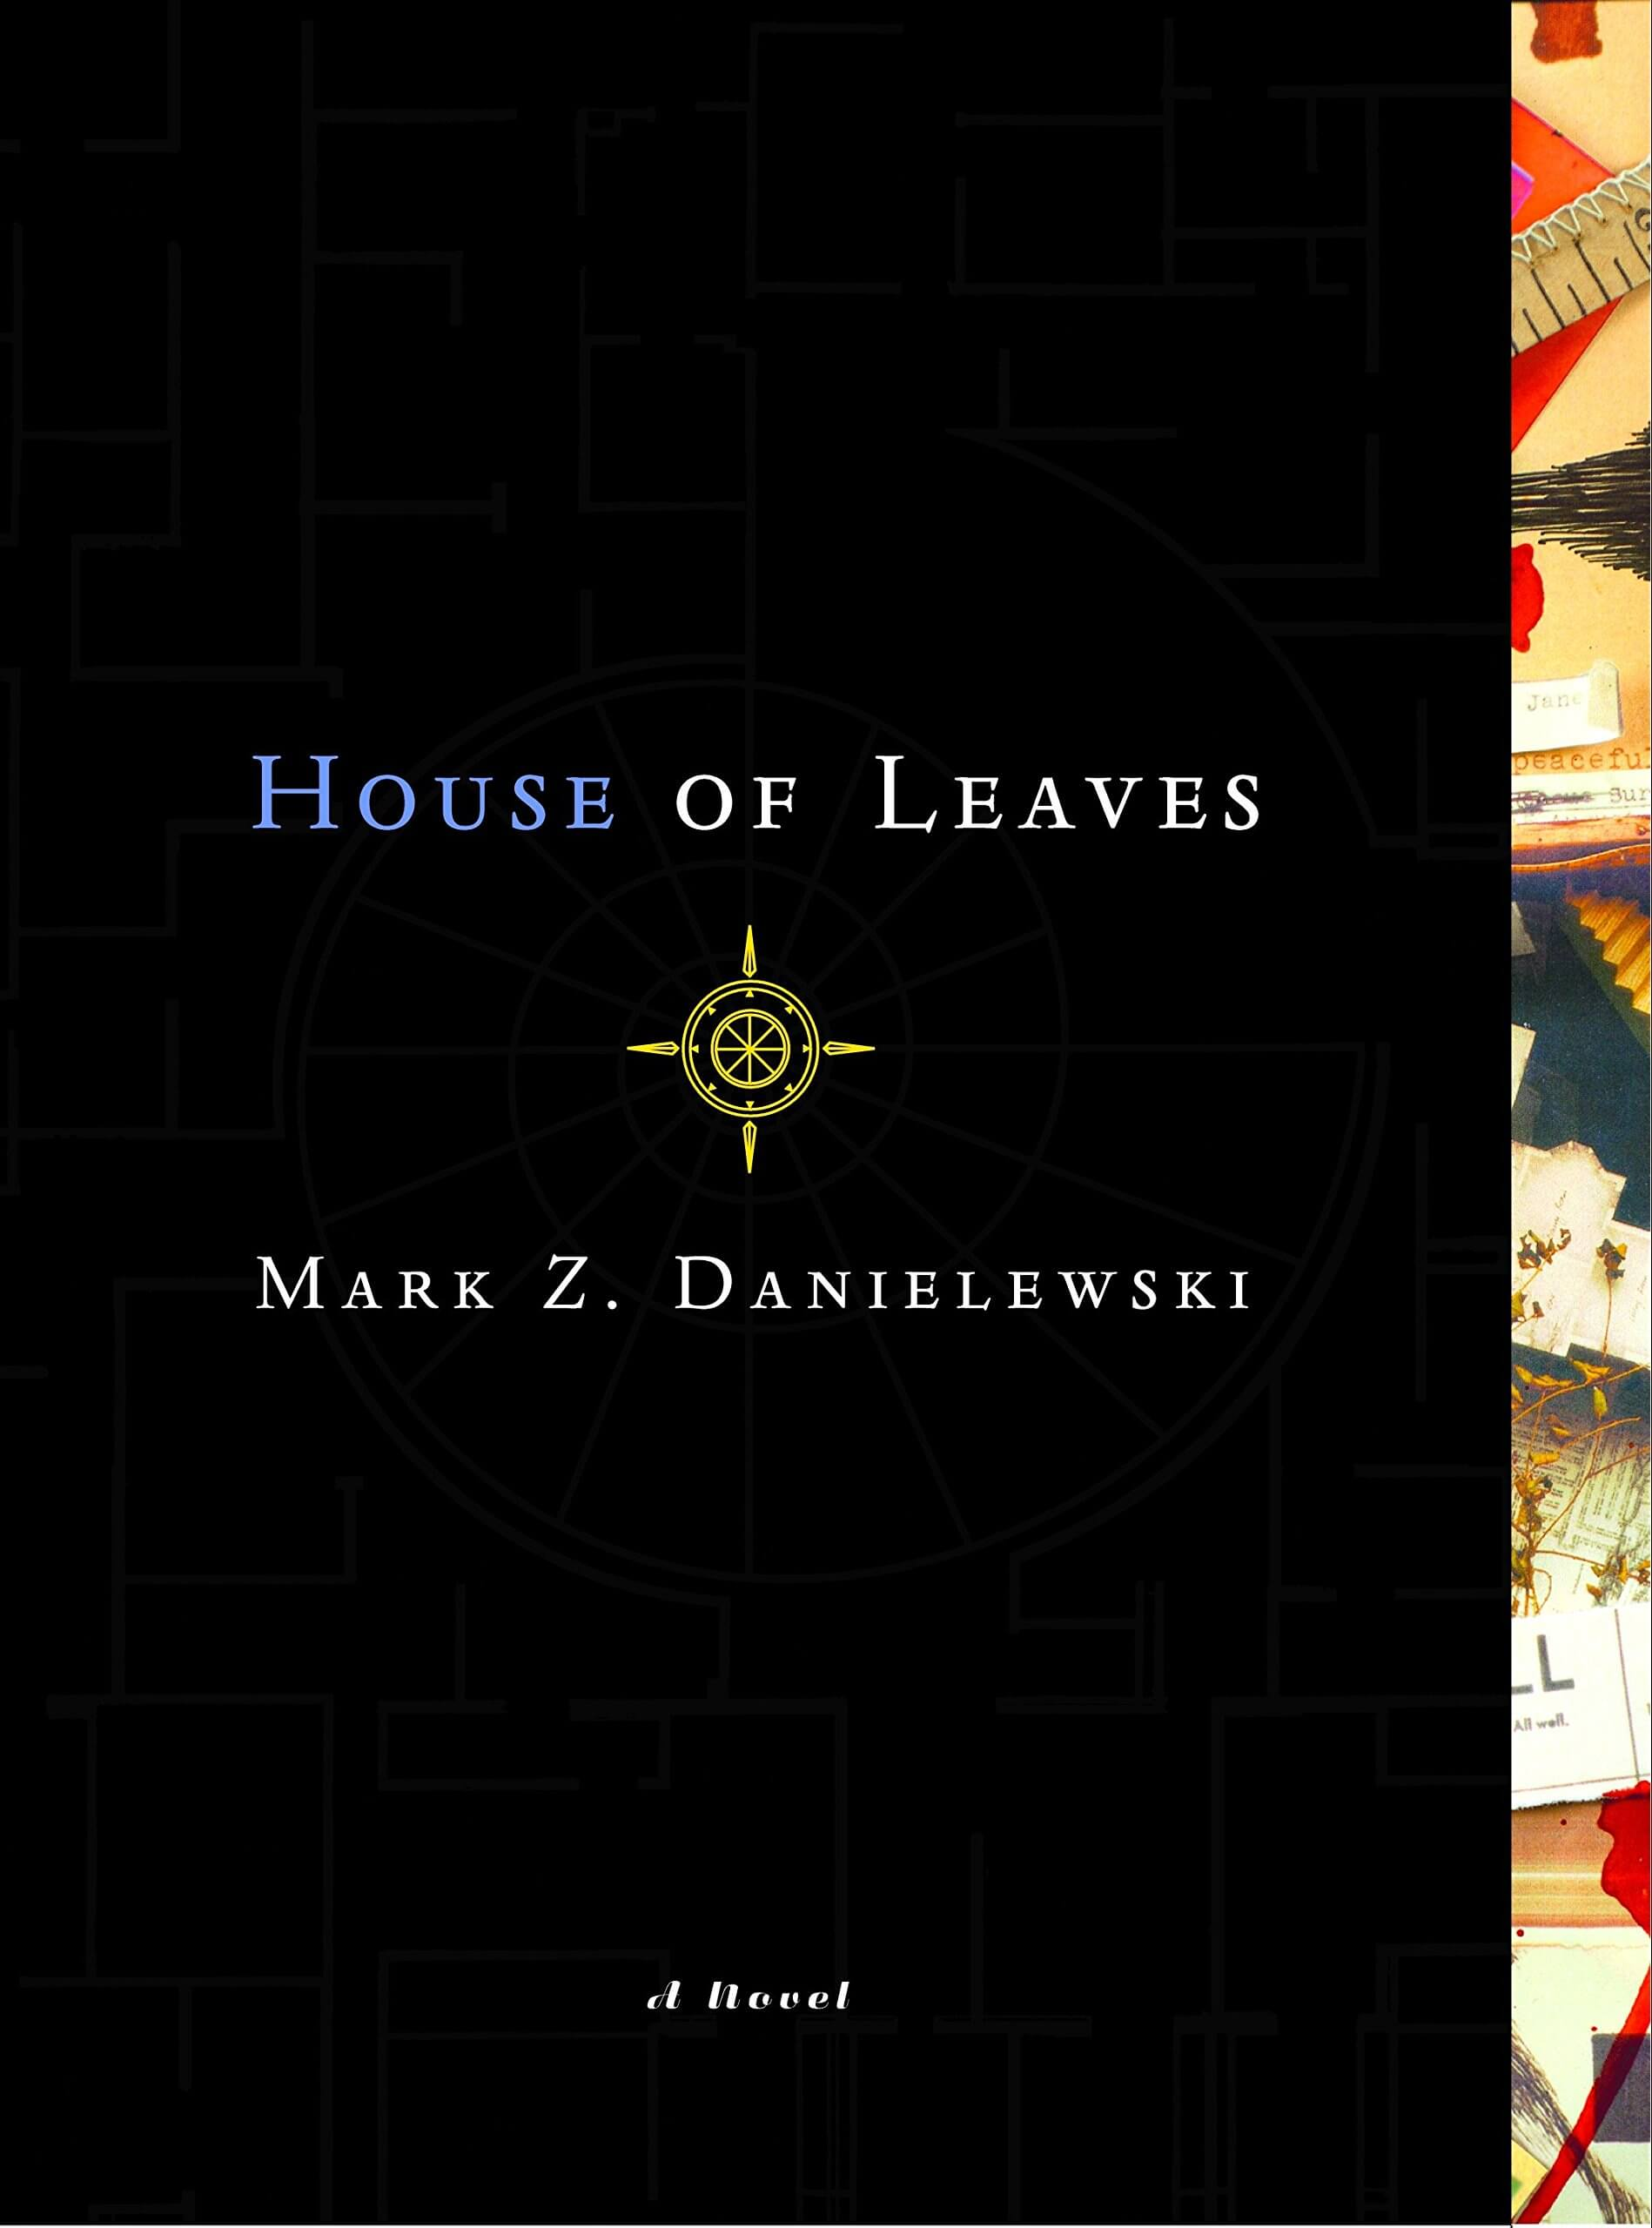 House of Leaves book cover image